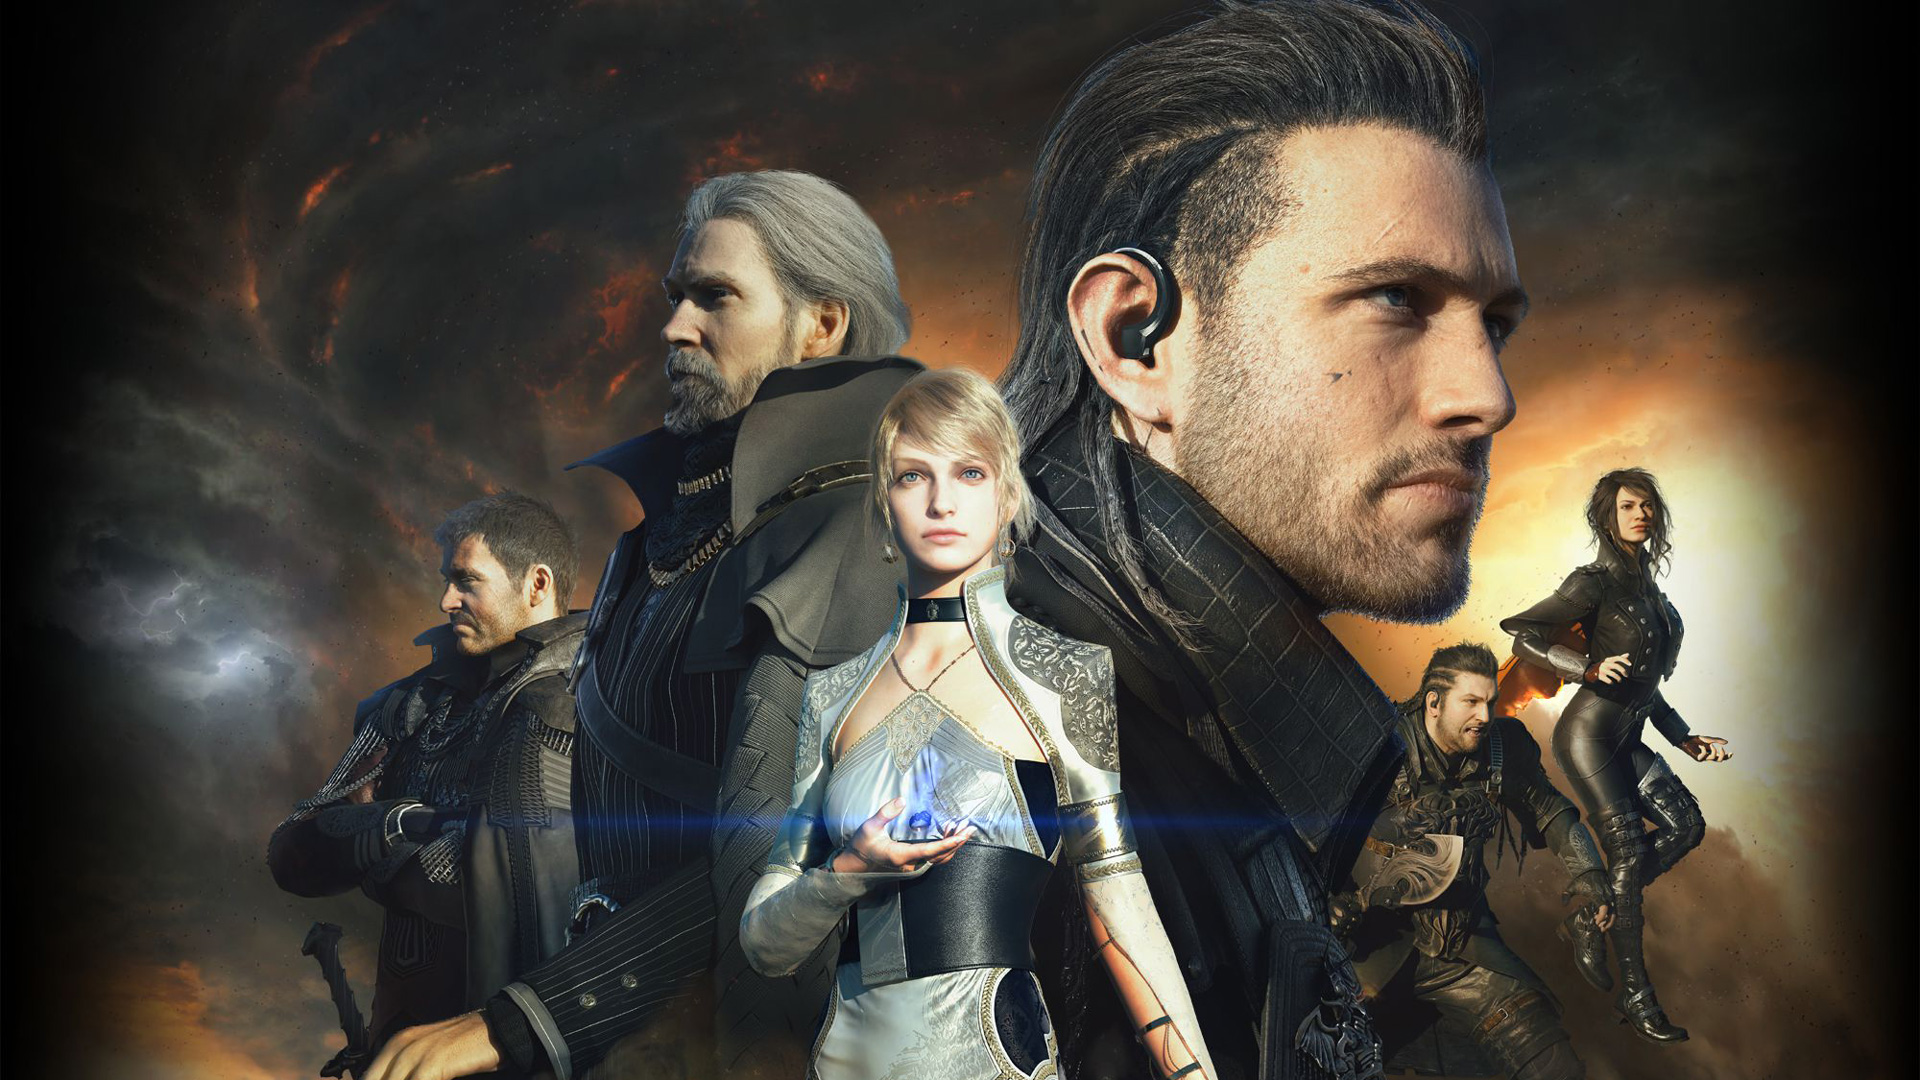 Kingsglaive Final Fantasy Xv Hd Movies 4k Wallpapers Images